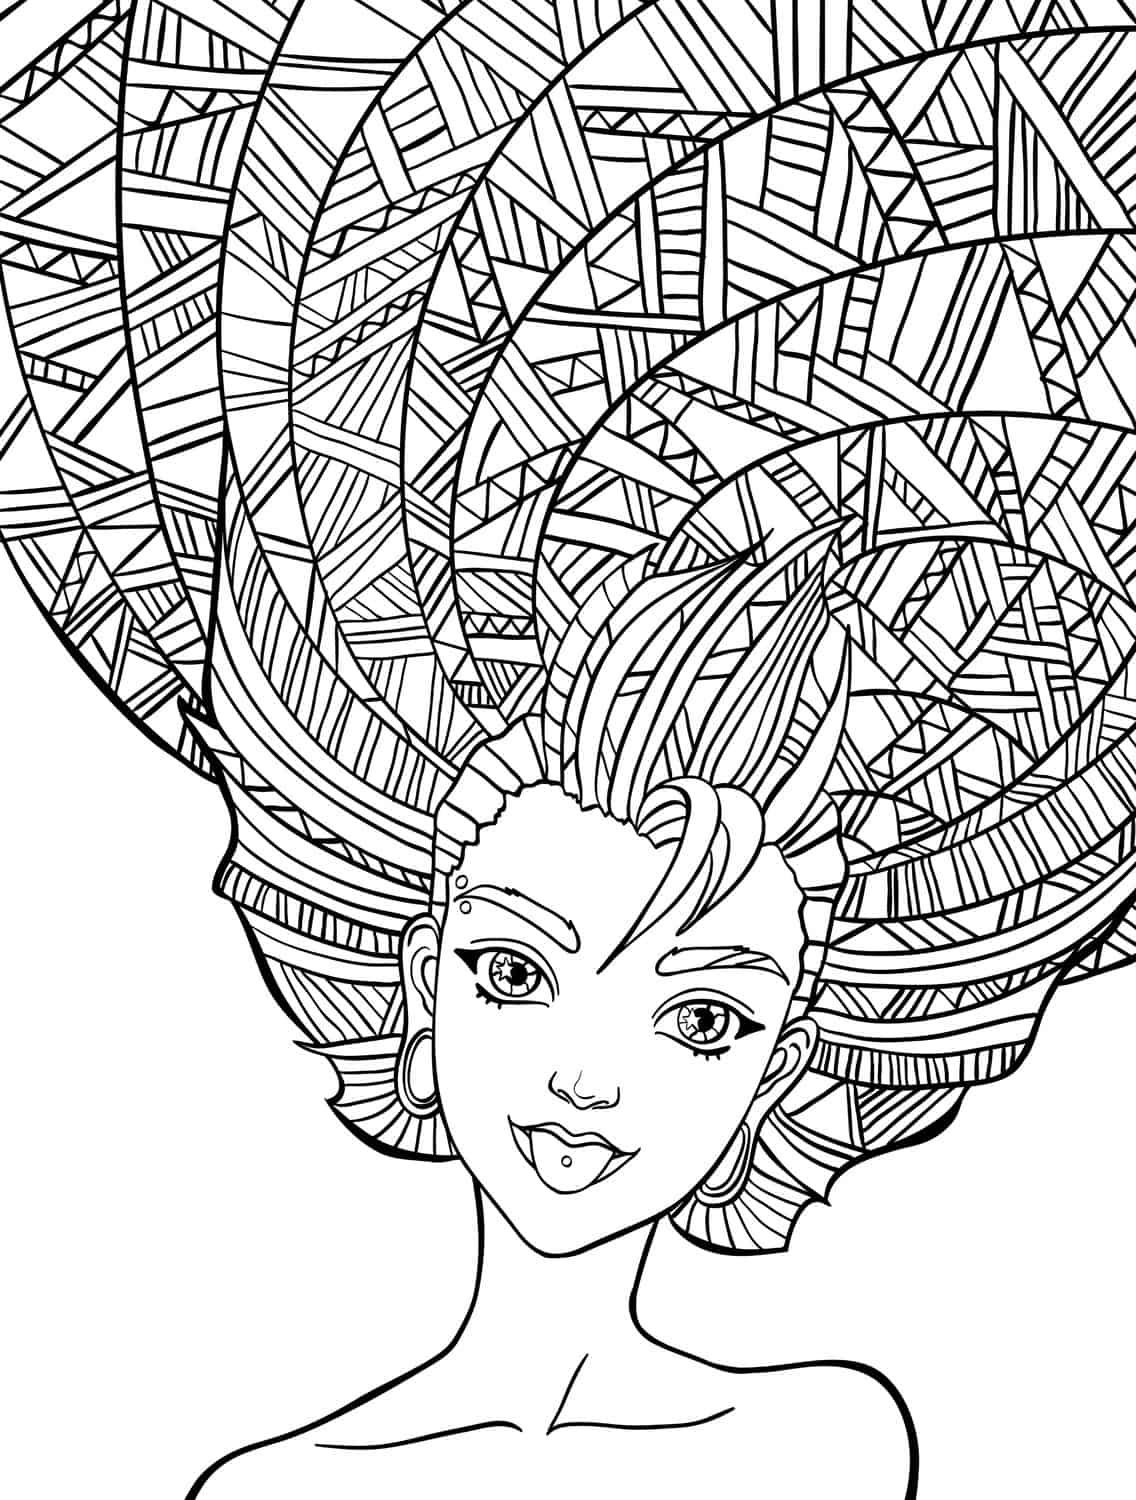 10 Crazy Hair Adult Coloring Pages - Page 9 of 12 - Nerdy Mamma